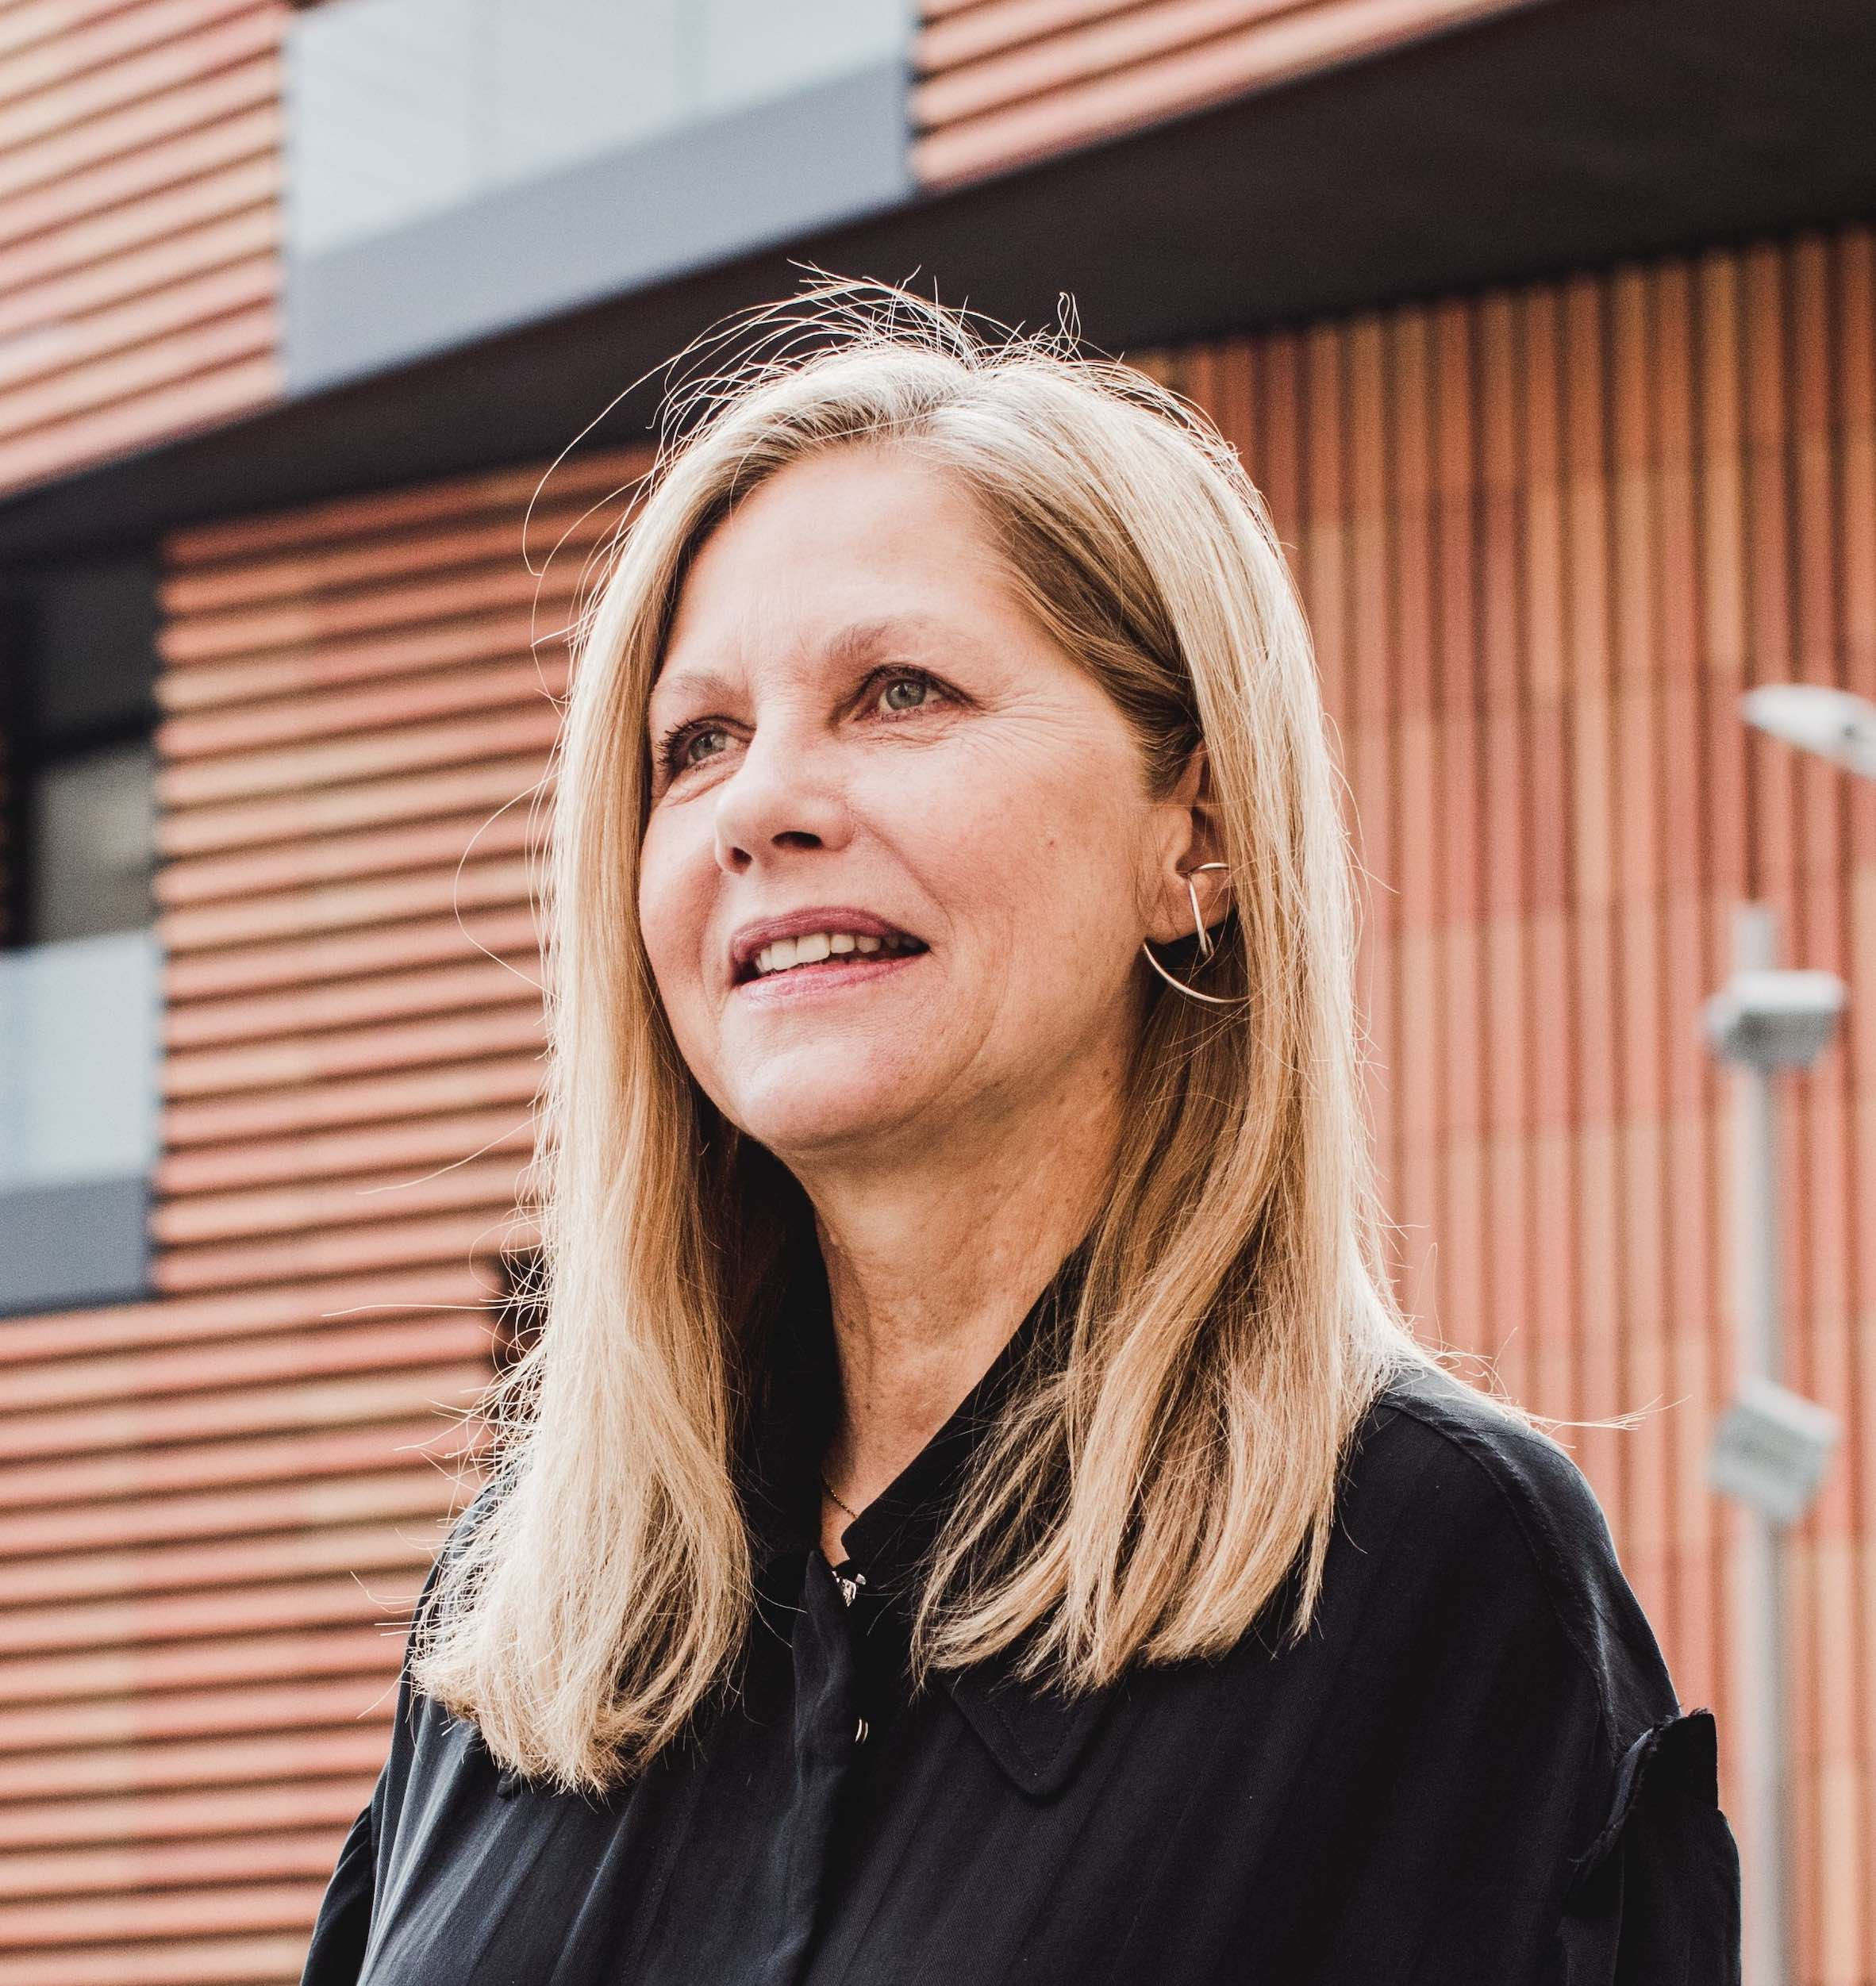 Martha Thorne is a speaker at Business of Design Week